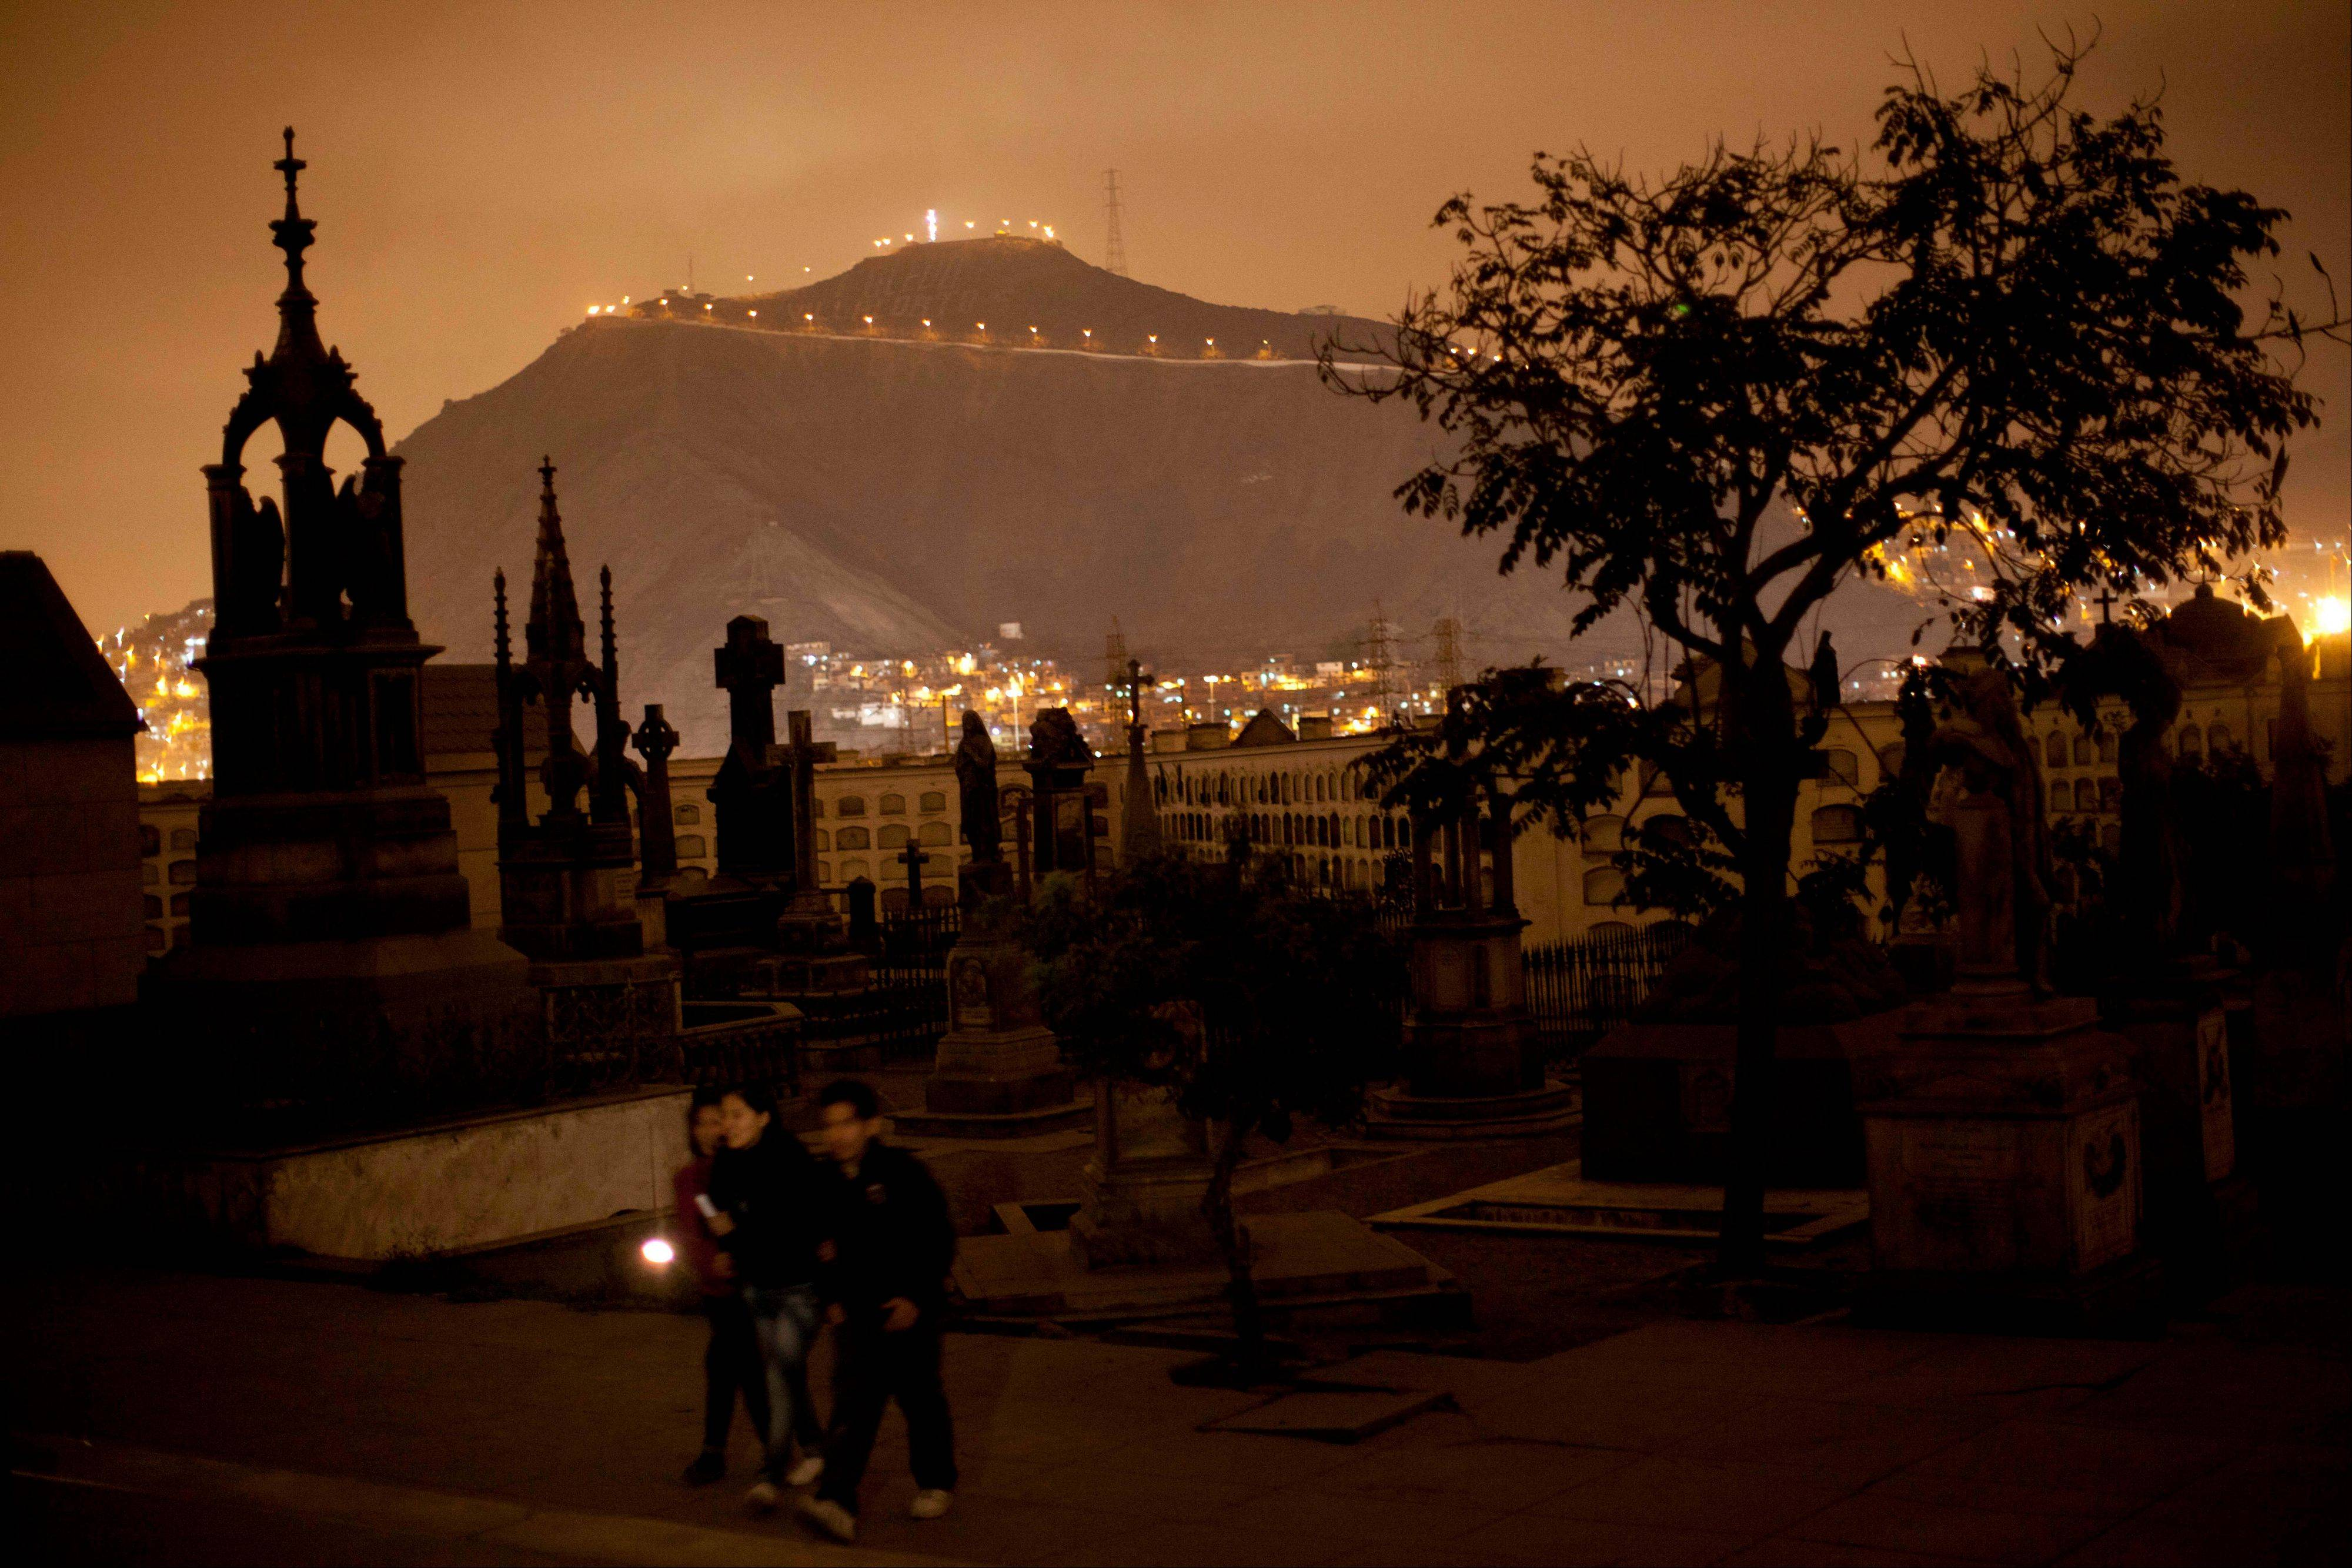 People use a flashlight as they take a nighttime guided tour through the Presbitero Matias Maestro cemetery in Lima, Peru. There are tombs of popular saints the Vatican doesn't recognize.